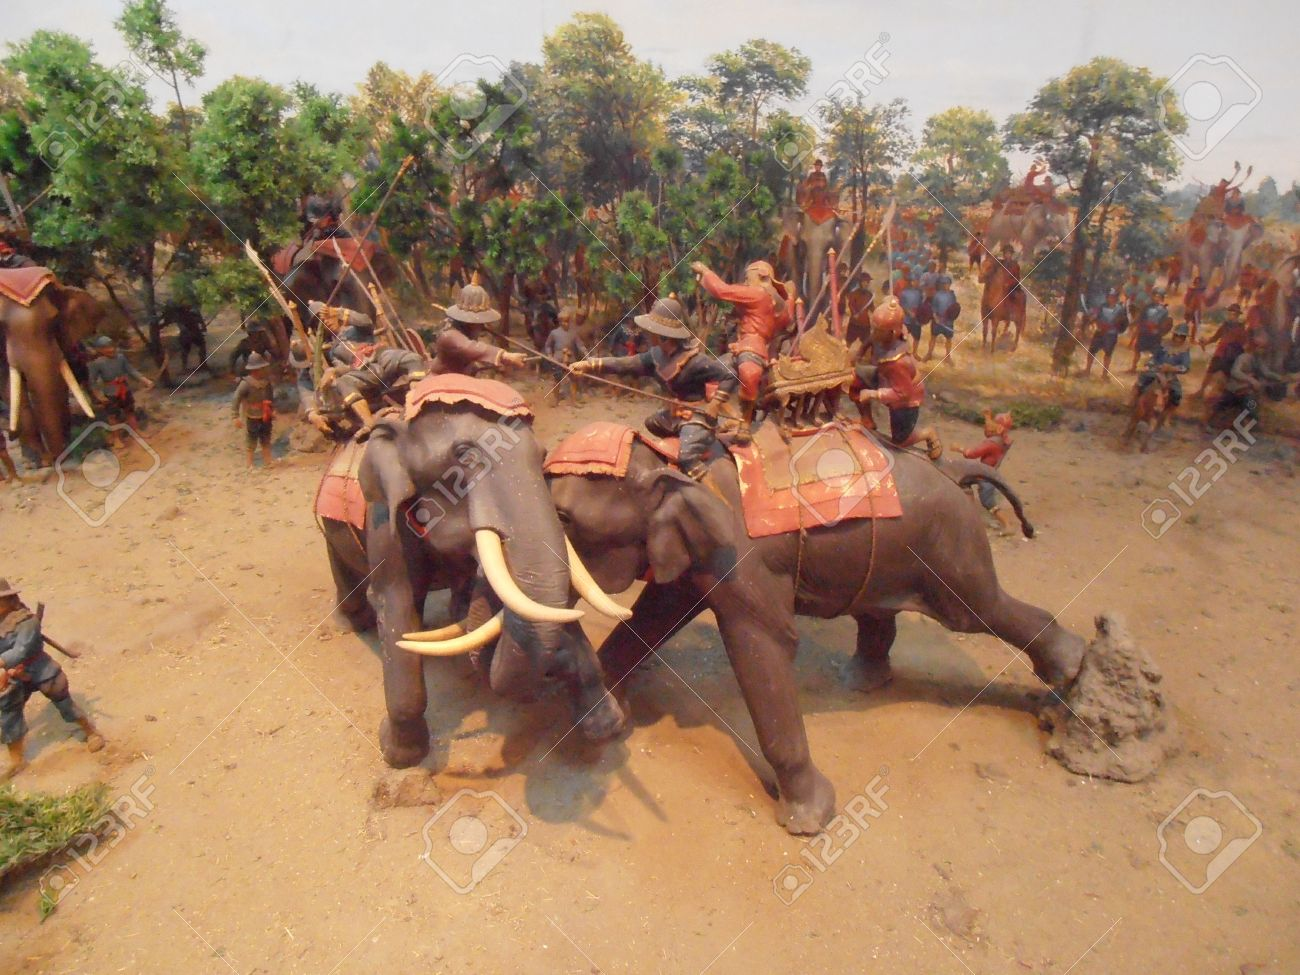 21747283-Model-of-War-Elephant-Thailand-